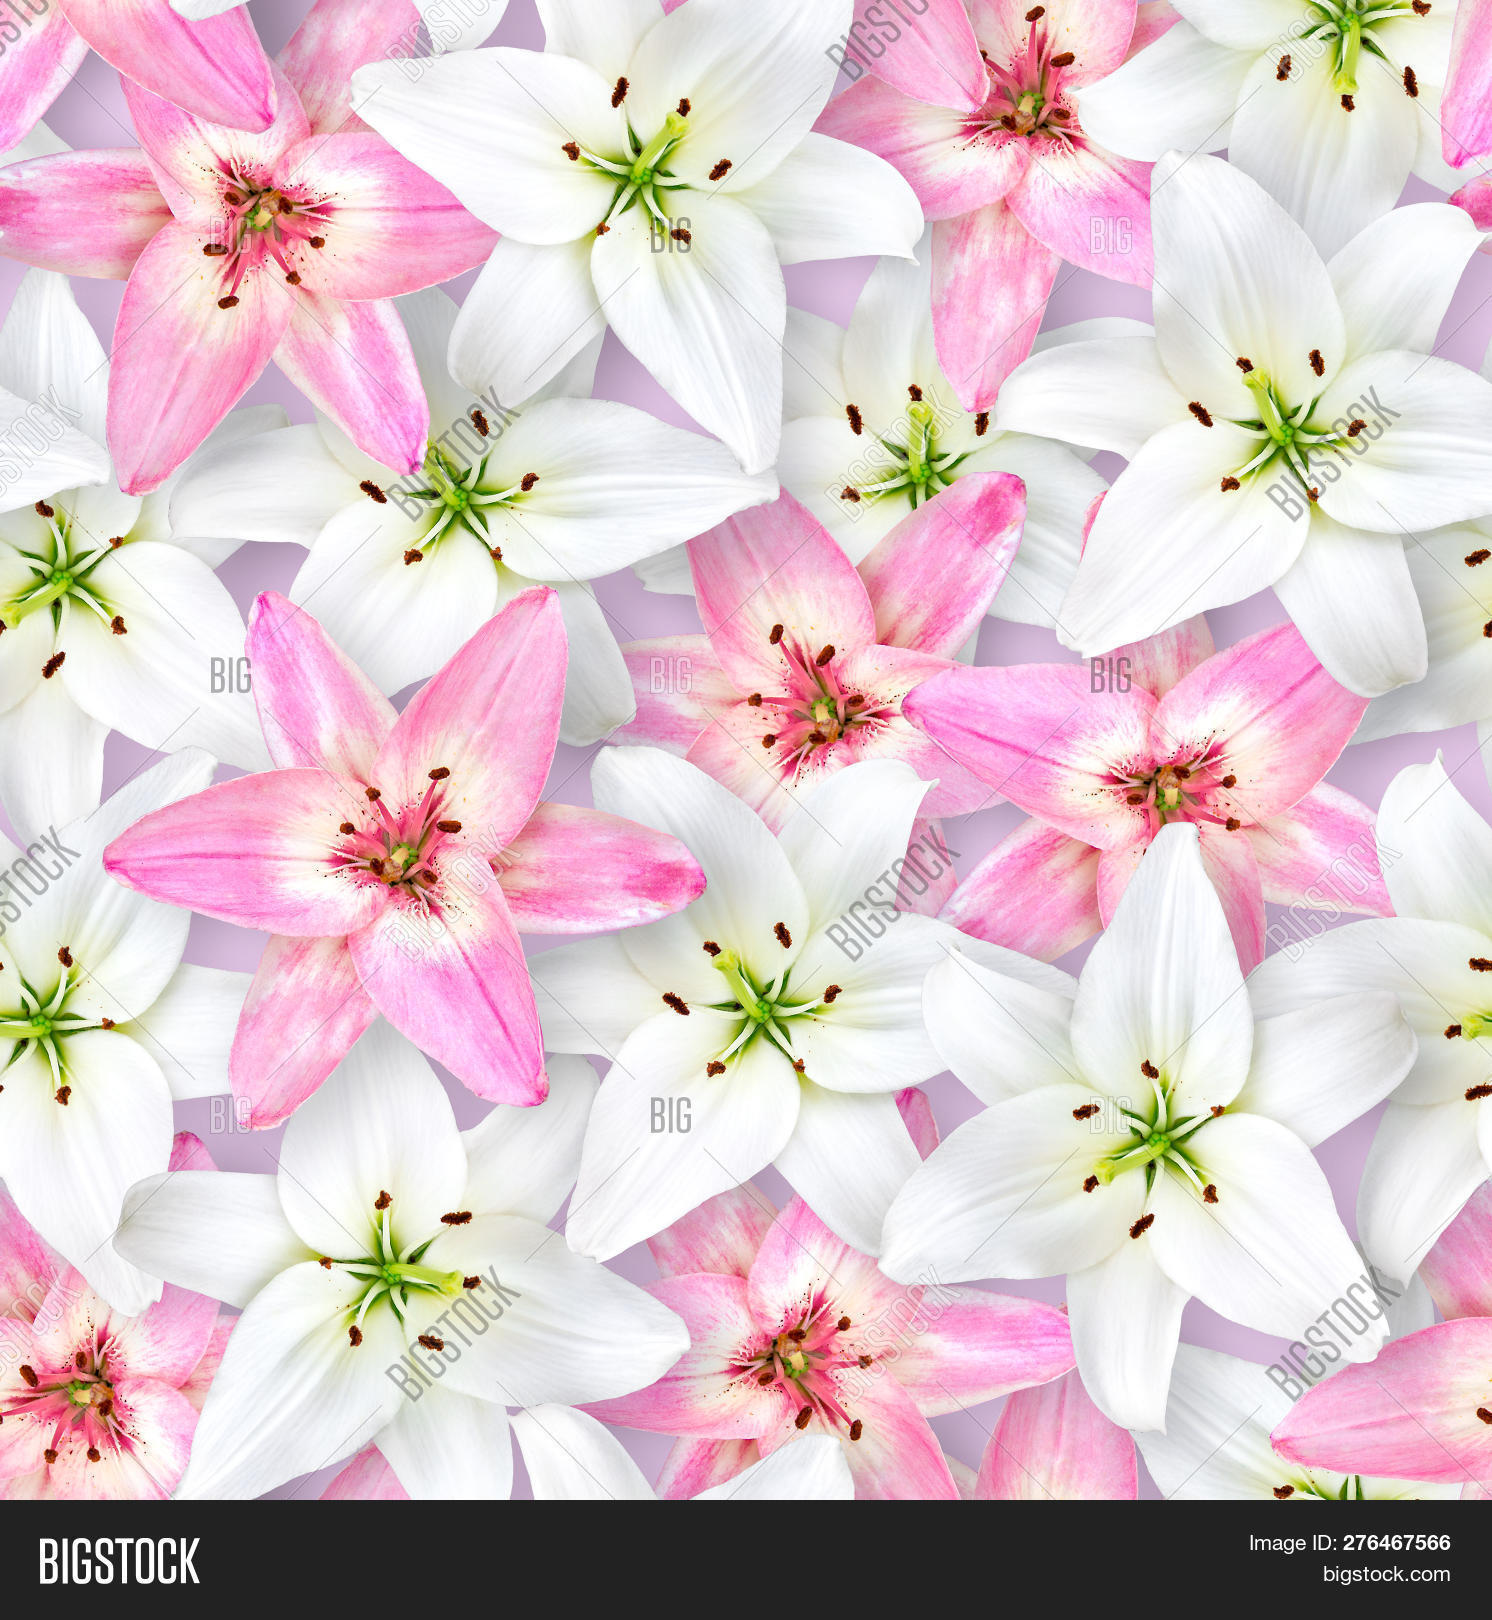 Seamless Floral Image Photo Free Trial Bigstock